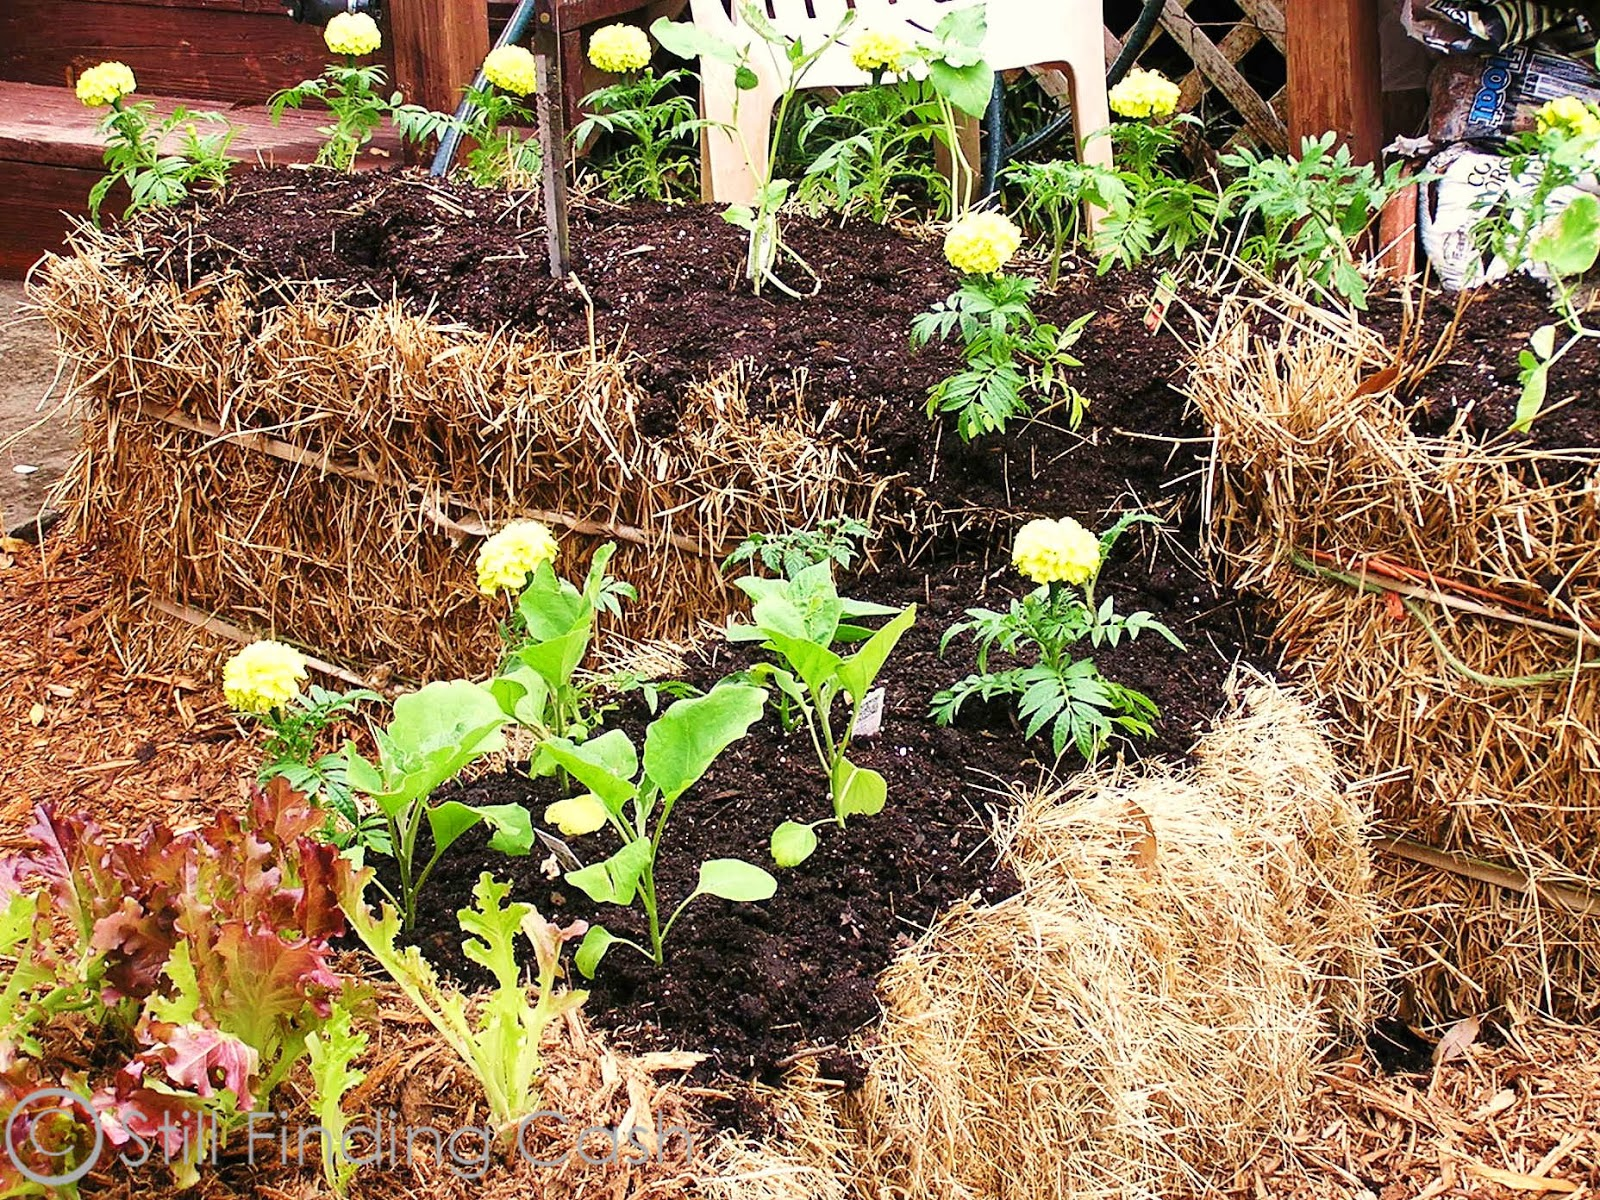 growing plants in hay bales Click HERE to link to Hay Bale post #1, and HERE for post #2)